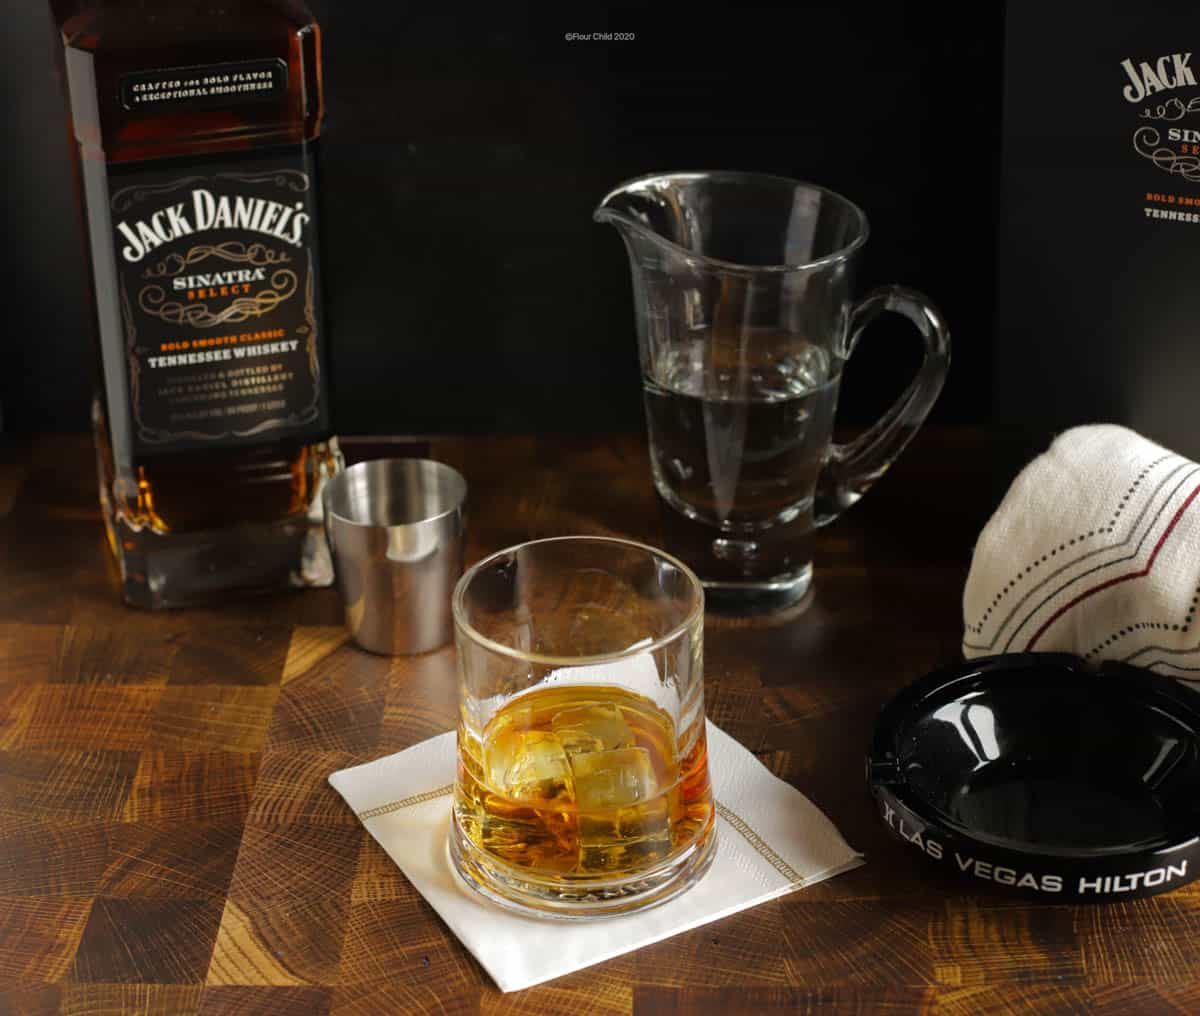 A rocks glass with Jack Daniels Sinatra Select whiskey.